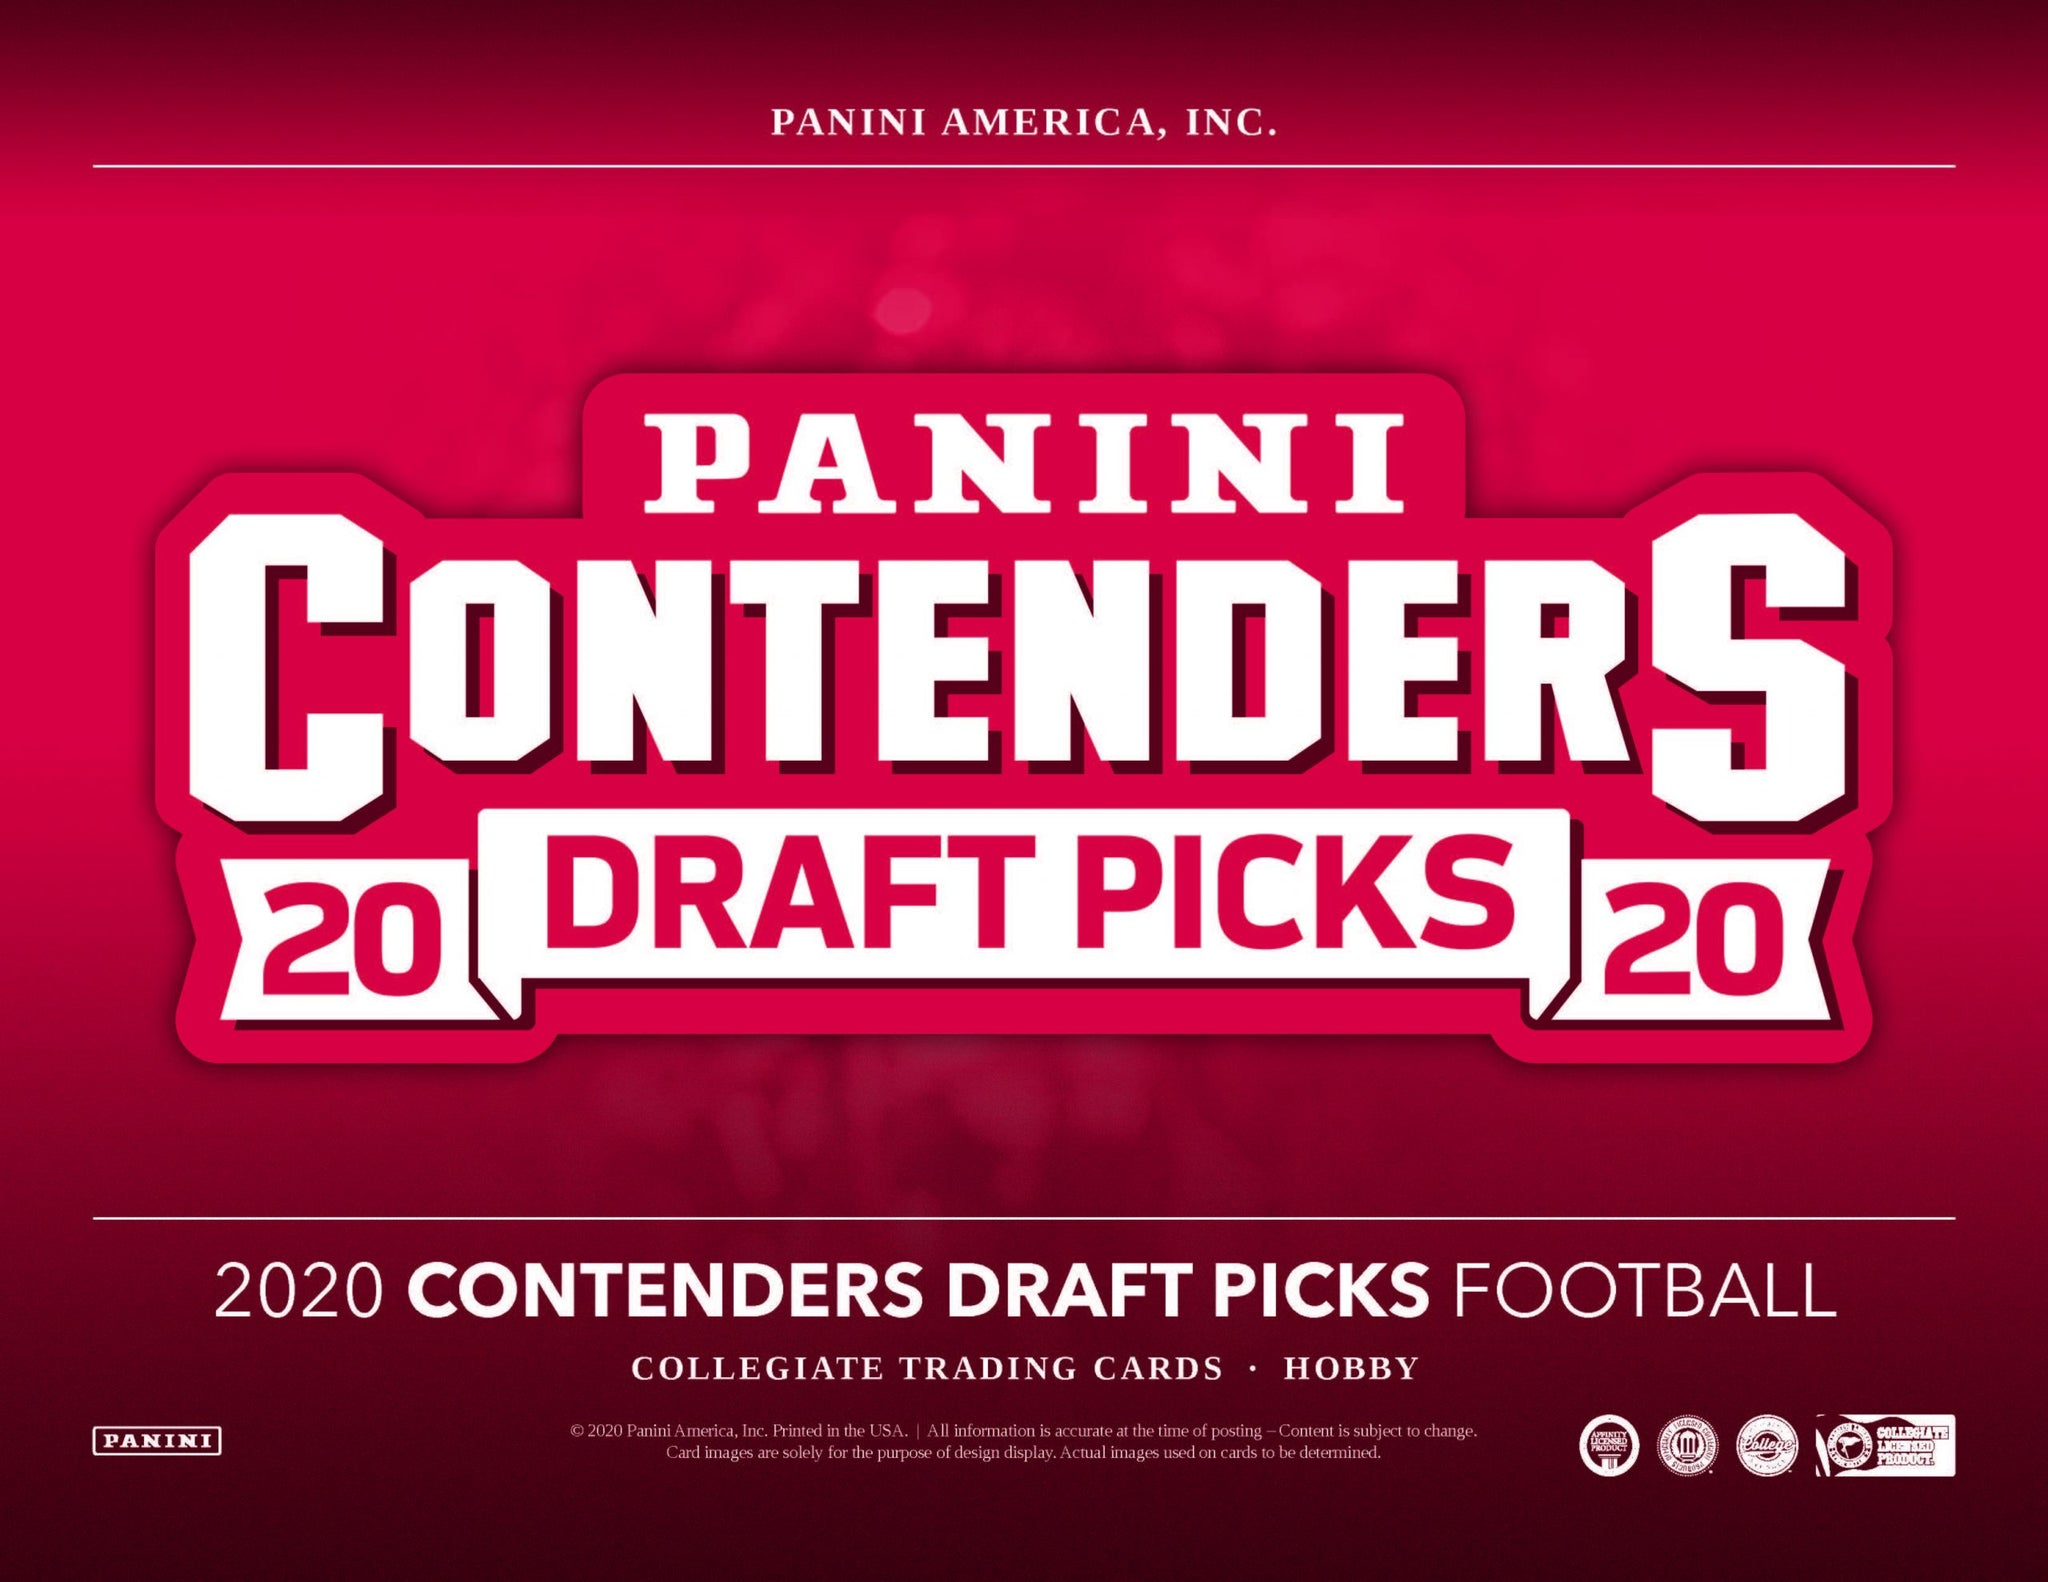 2020 Panini Contenders Draft Picks Football Personal 1 Box Break